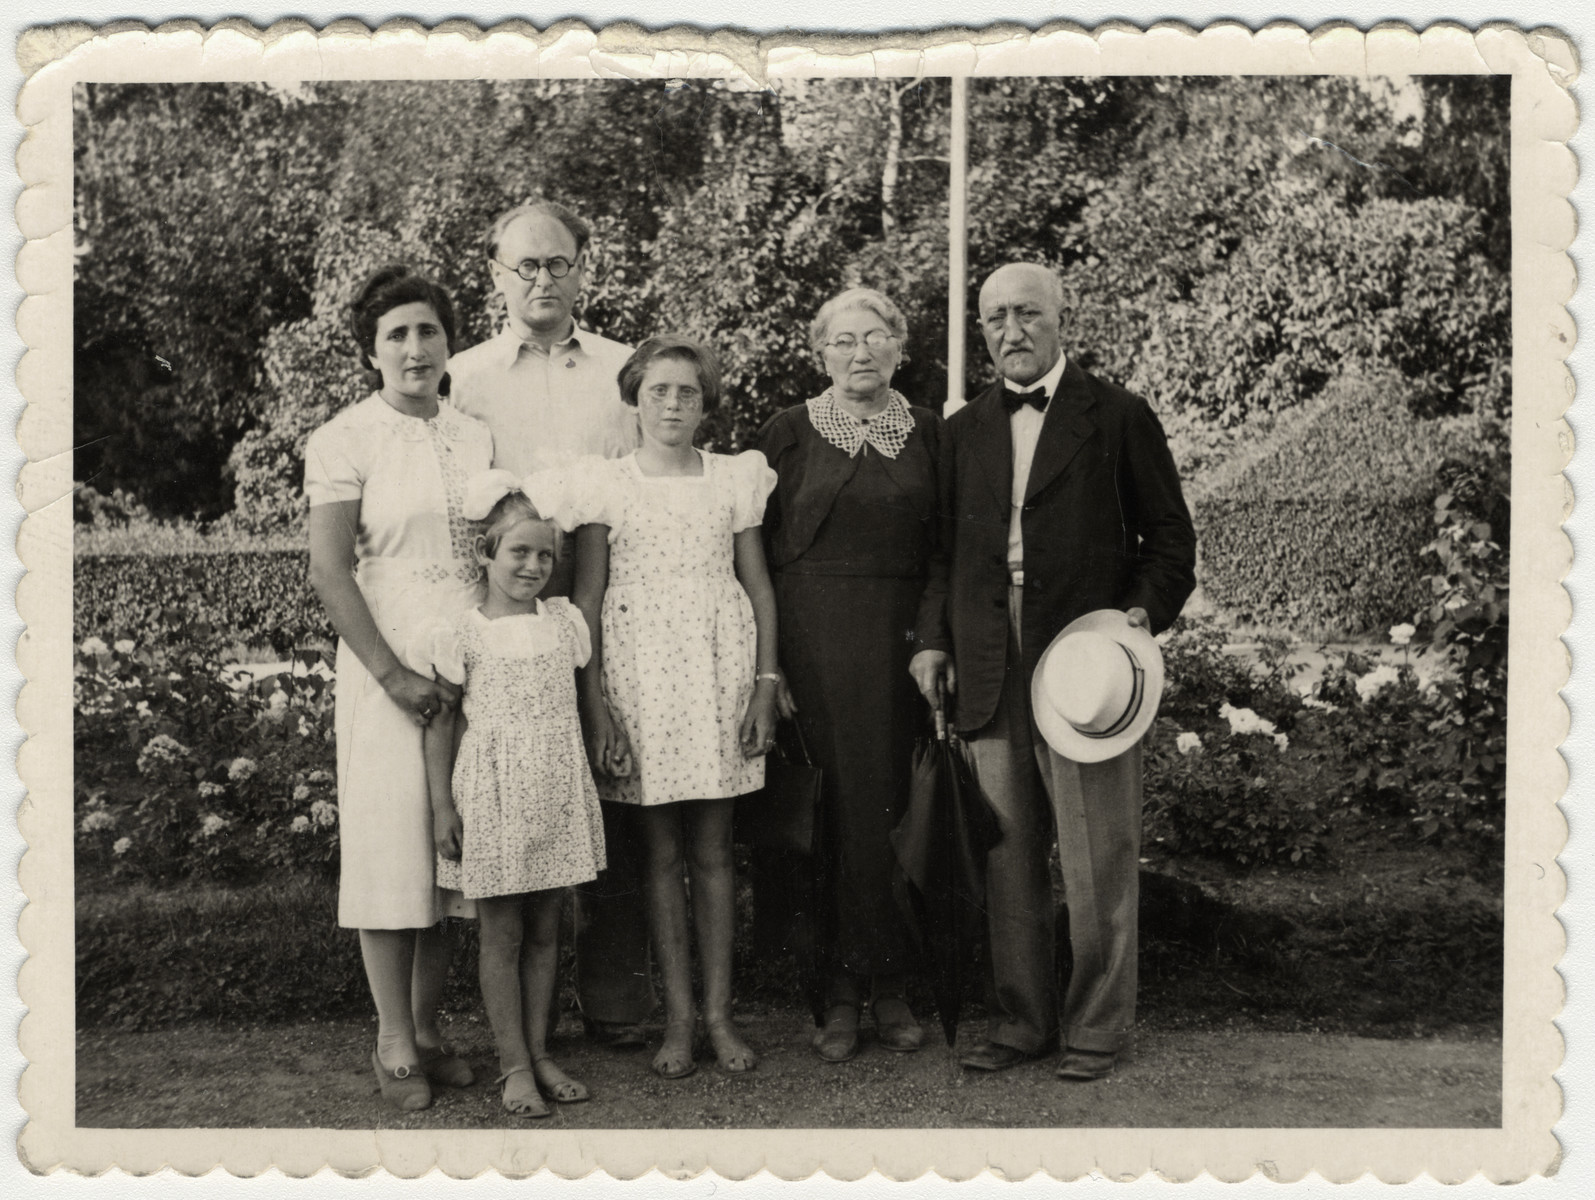 Group portrait of a Latvian Jewish family.  Photographed are Frieda and Arthur Lewenstein with their daughters Libin (left) and Bella (right), and Frieda's parents Bernard and Scheine ('Jenny') Brenner. The family did not survive the Holocaust.